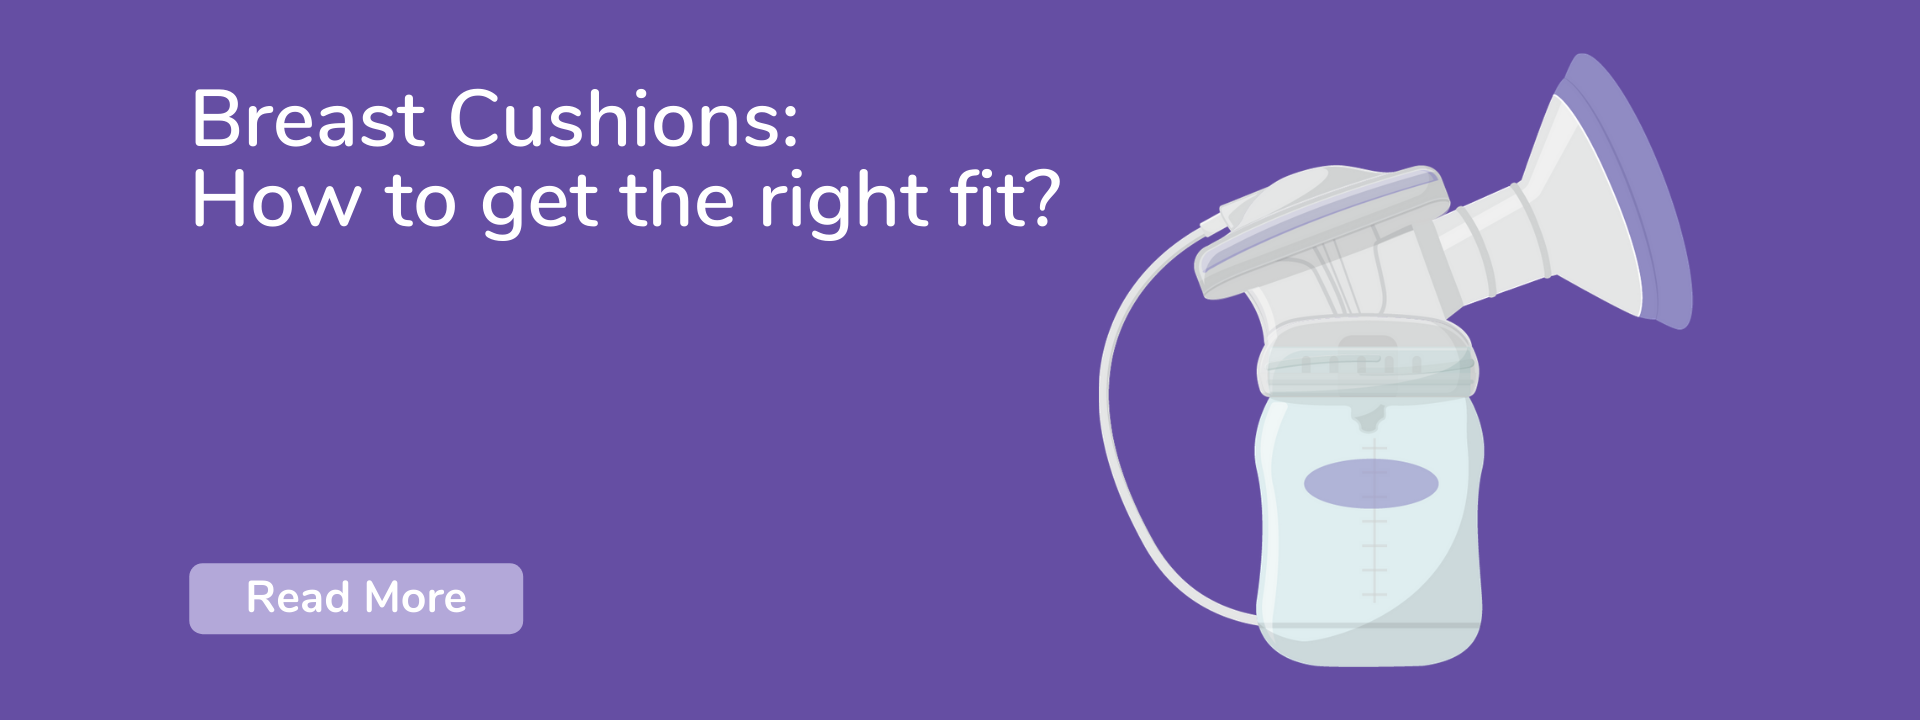 Breast Cushions: How to get the right fit?